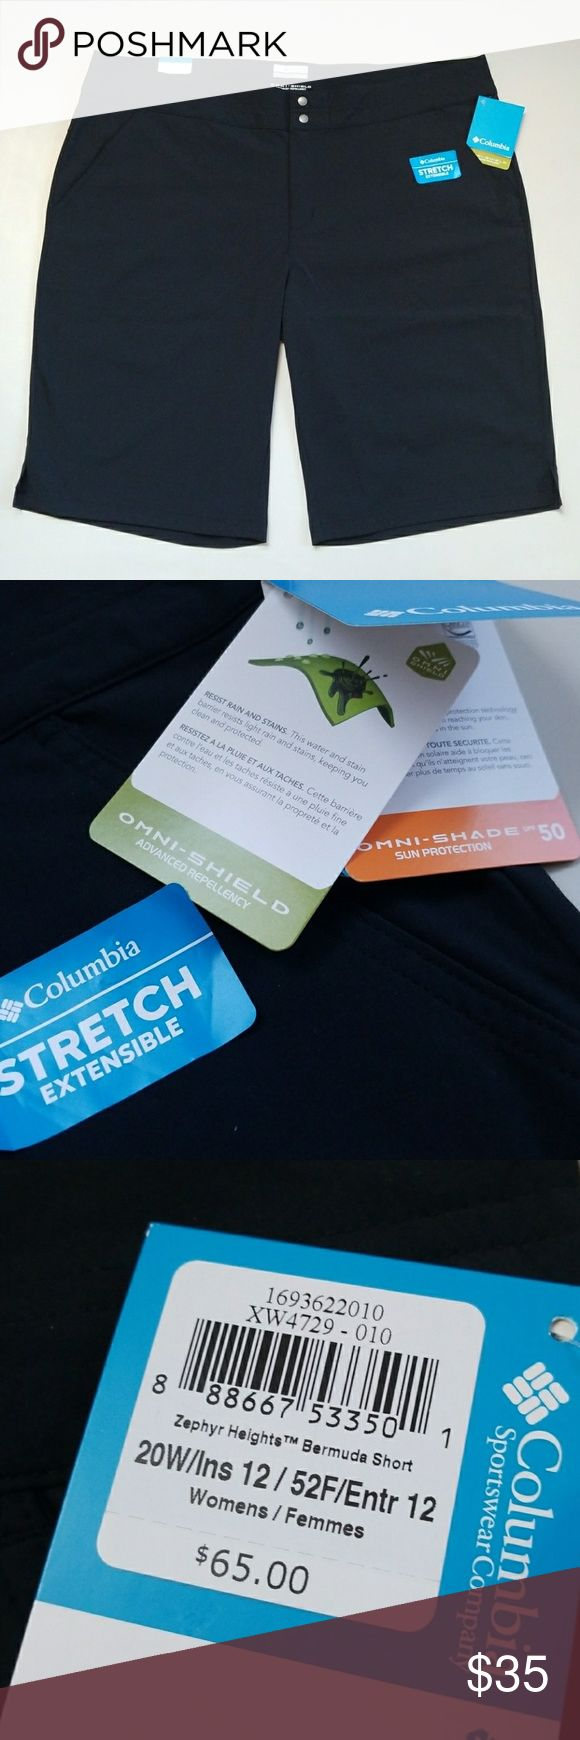 """NWT Columbia Outdoors Active Shorts New Columbia outdoors active bermuda. Rain and stain resistant, sun protection. Zip double snap closure. 2 pockets in front, 1 right side back pocket. Inseams from crutch to bottom is 12"""".  High quality brand. Columbia Shorts Bermudas"""